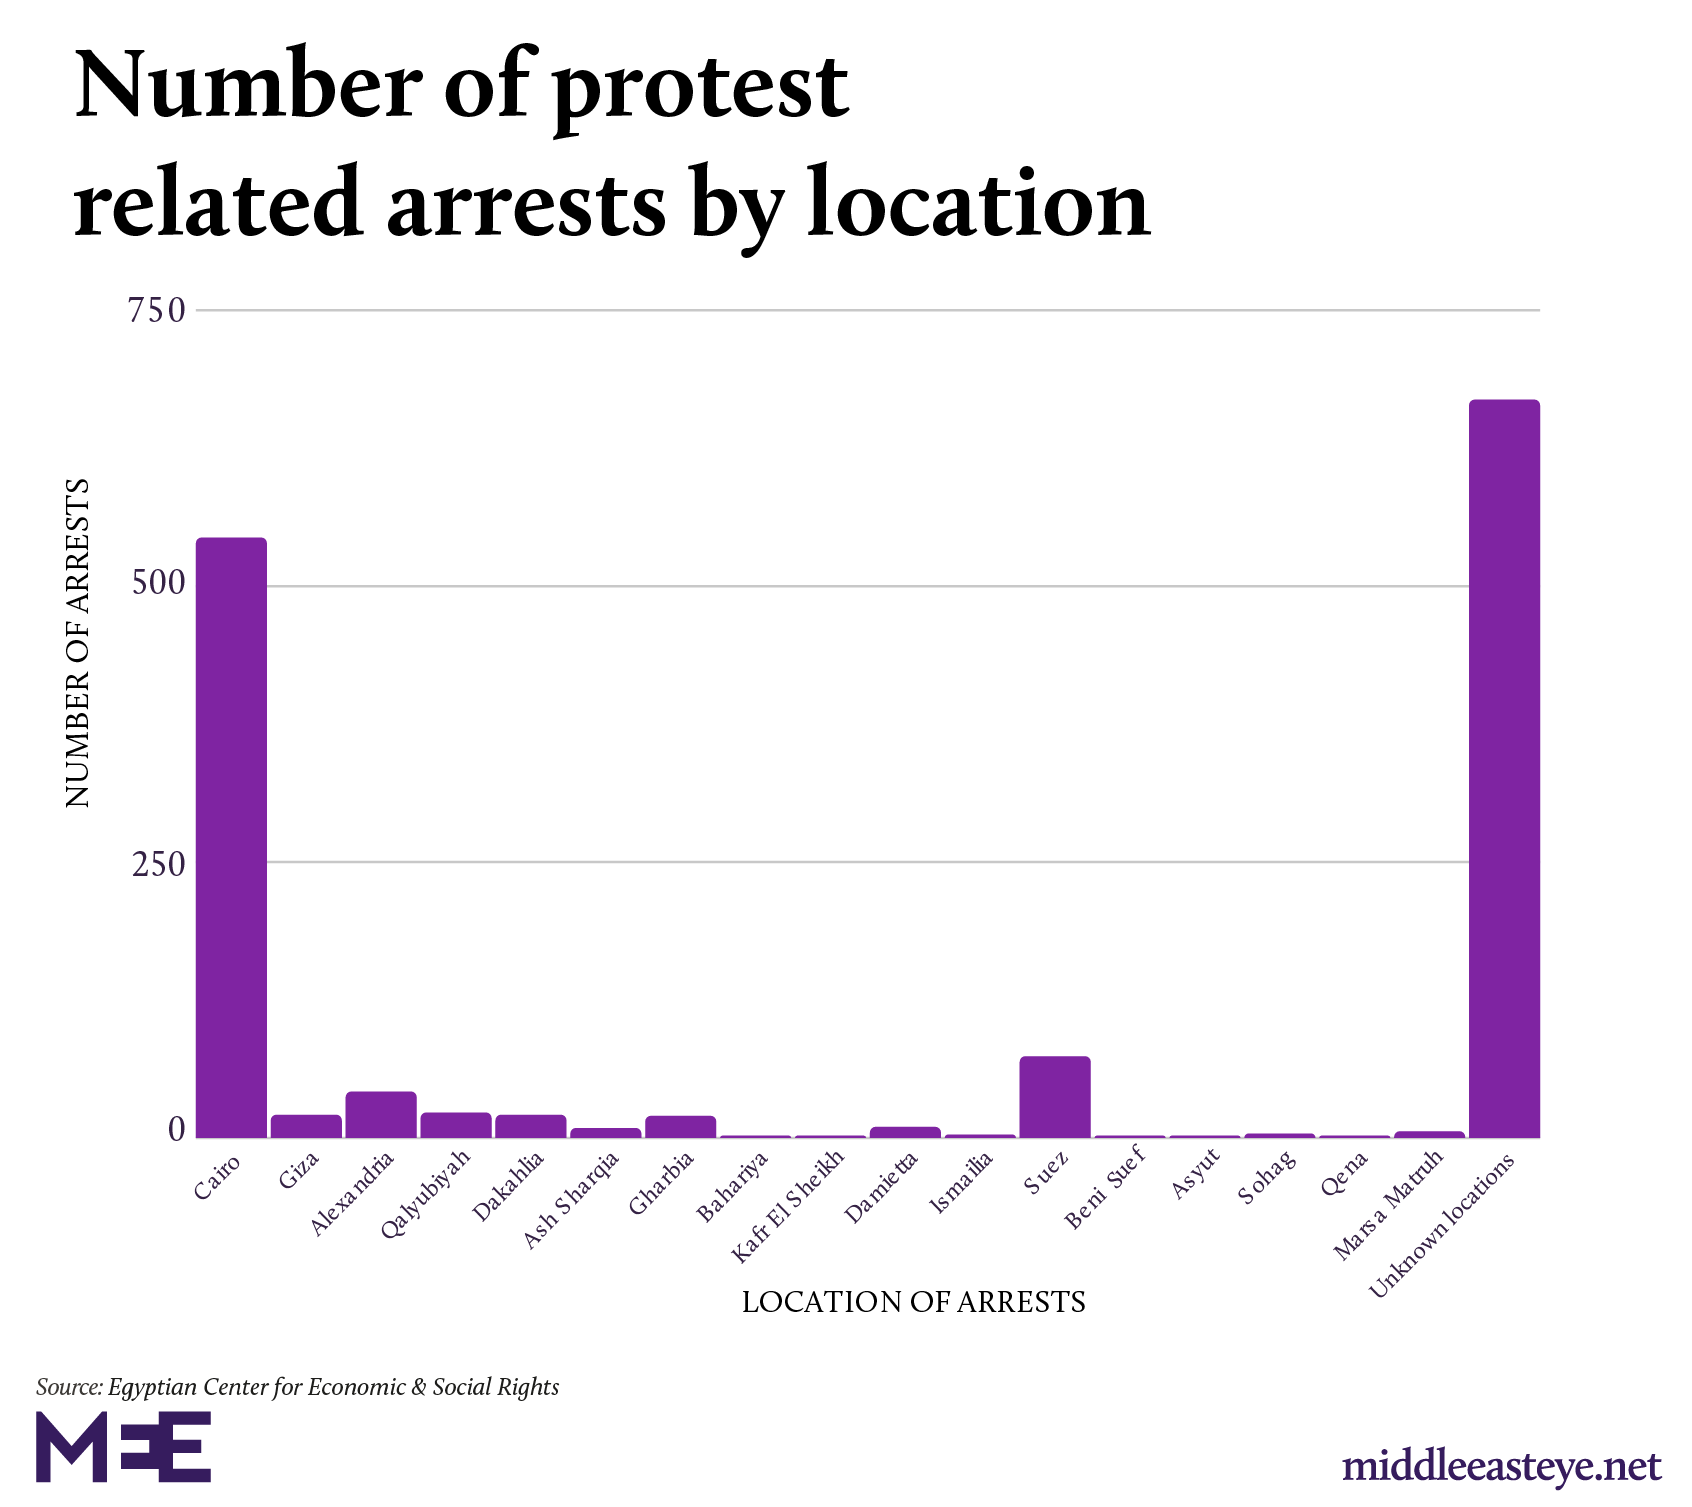 Location of protest related arrests Egypt 2019